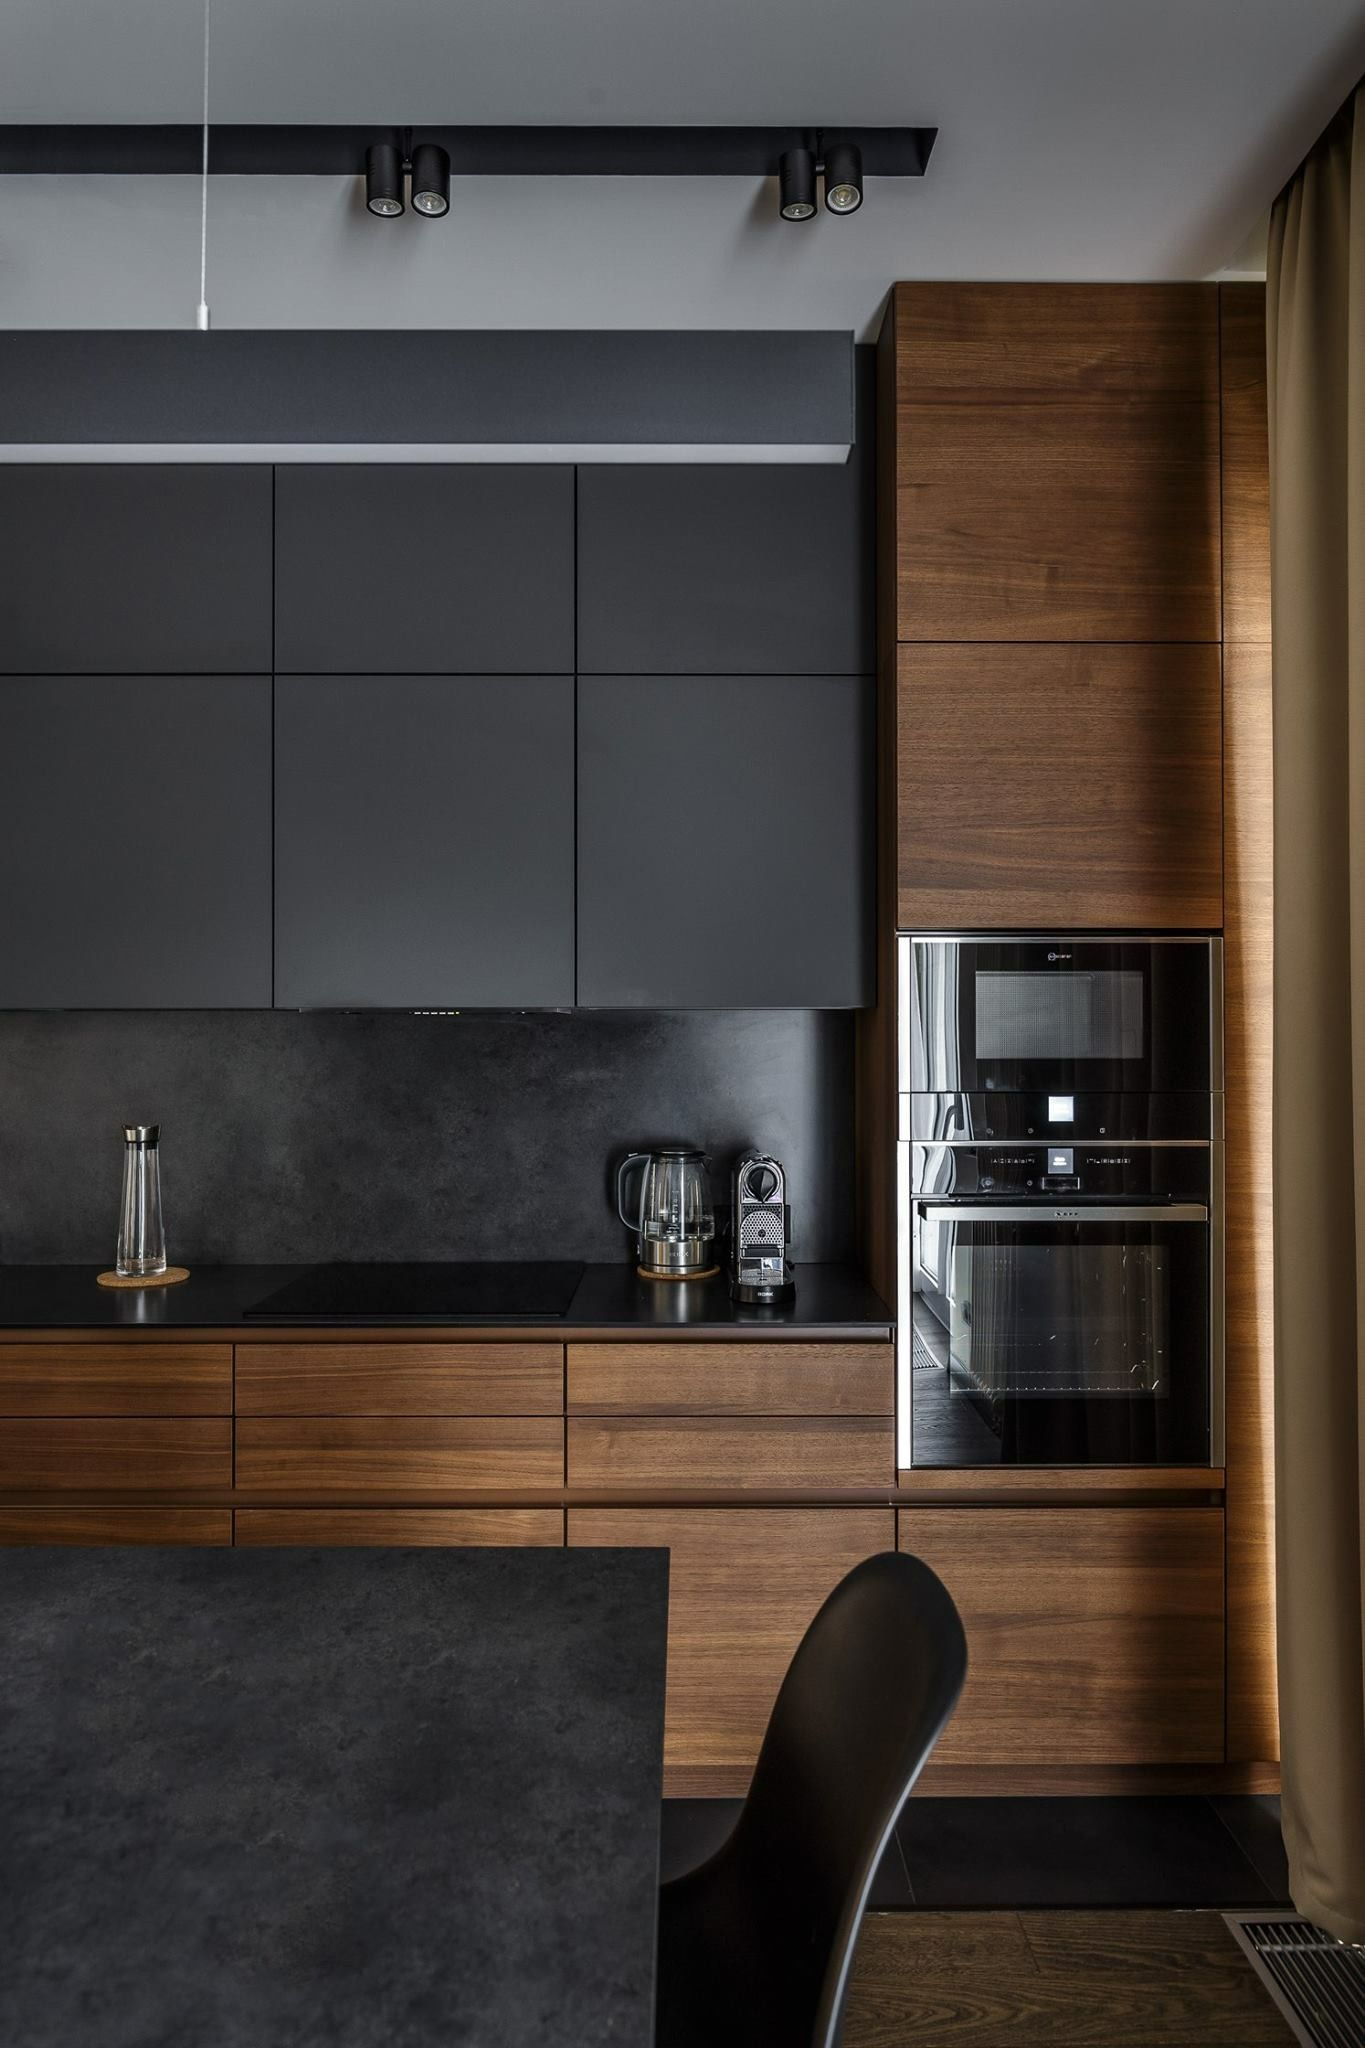 Pin By Adam Safar On Make Me Happy Small Modern Kitchens Kitchen Design Small Kitchen Design